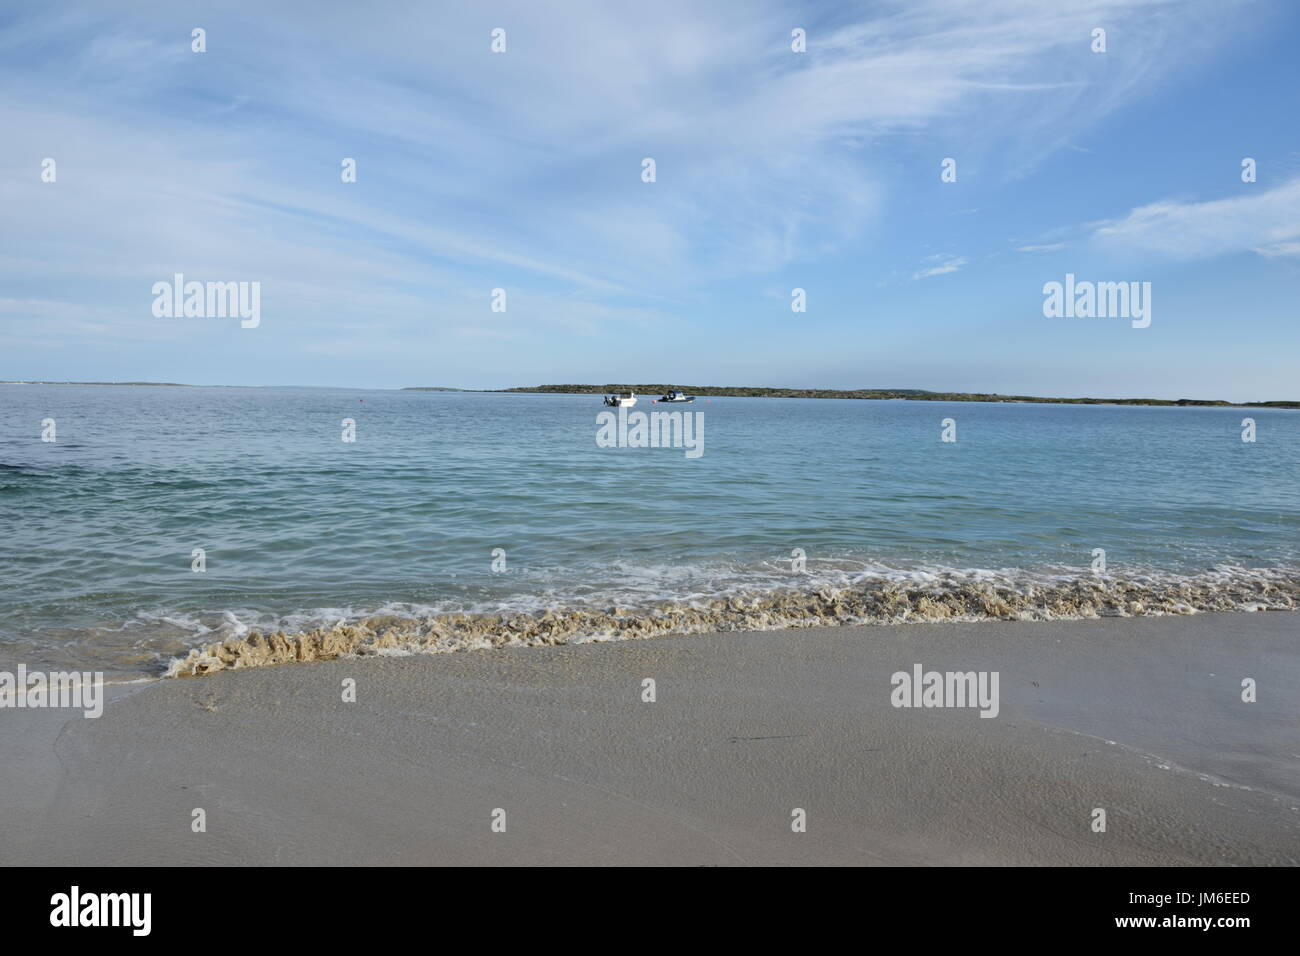 Sandy beach next to Wild Atlantic Way in the County Galway, Ireland Stock Photo